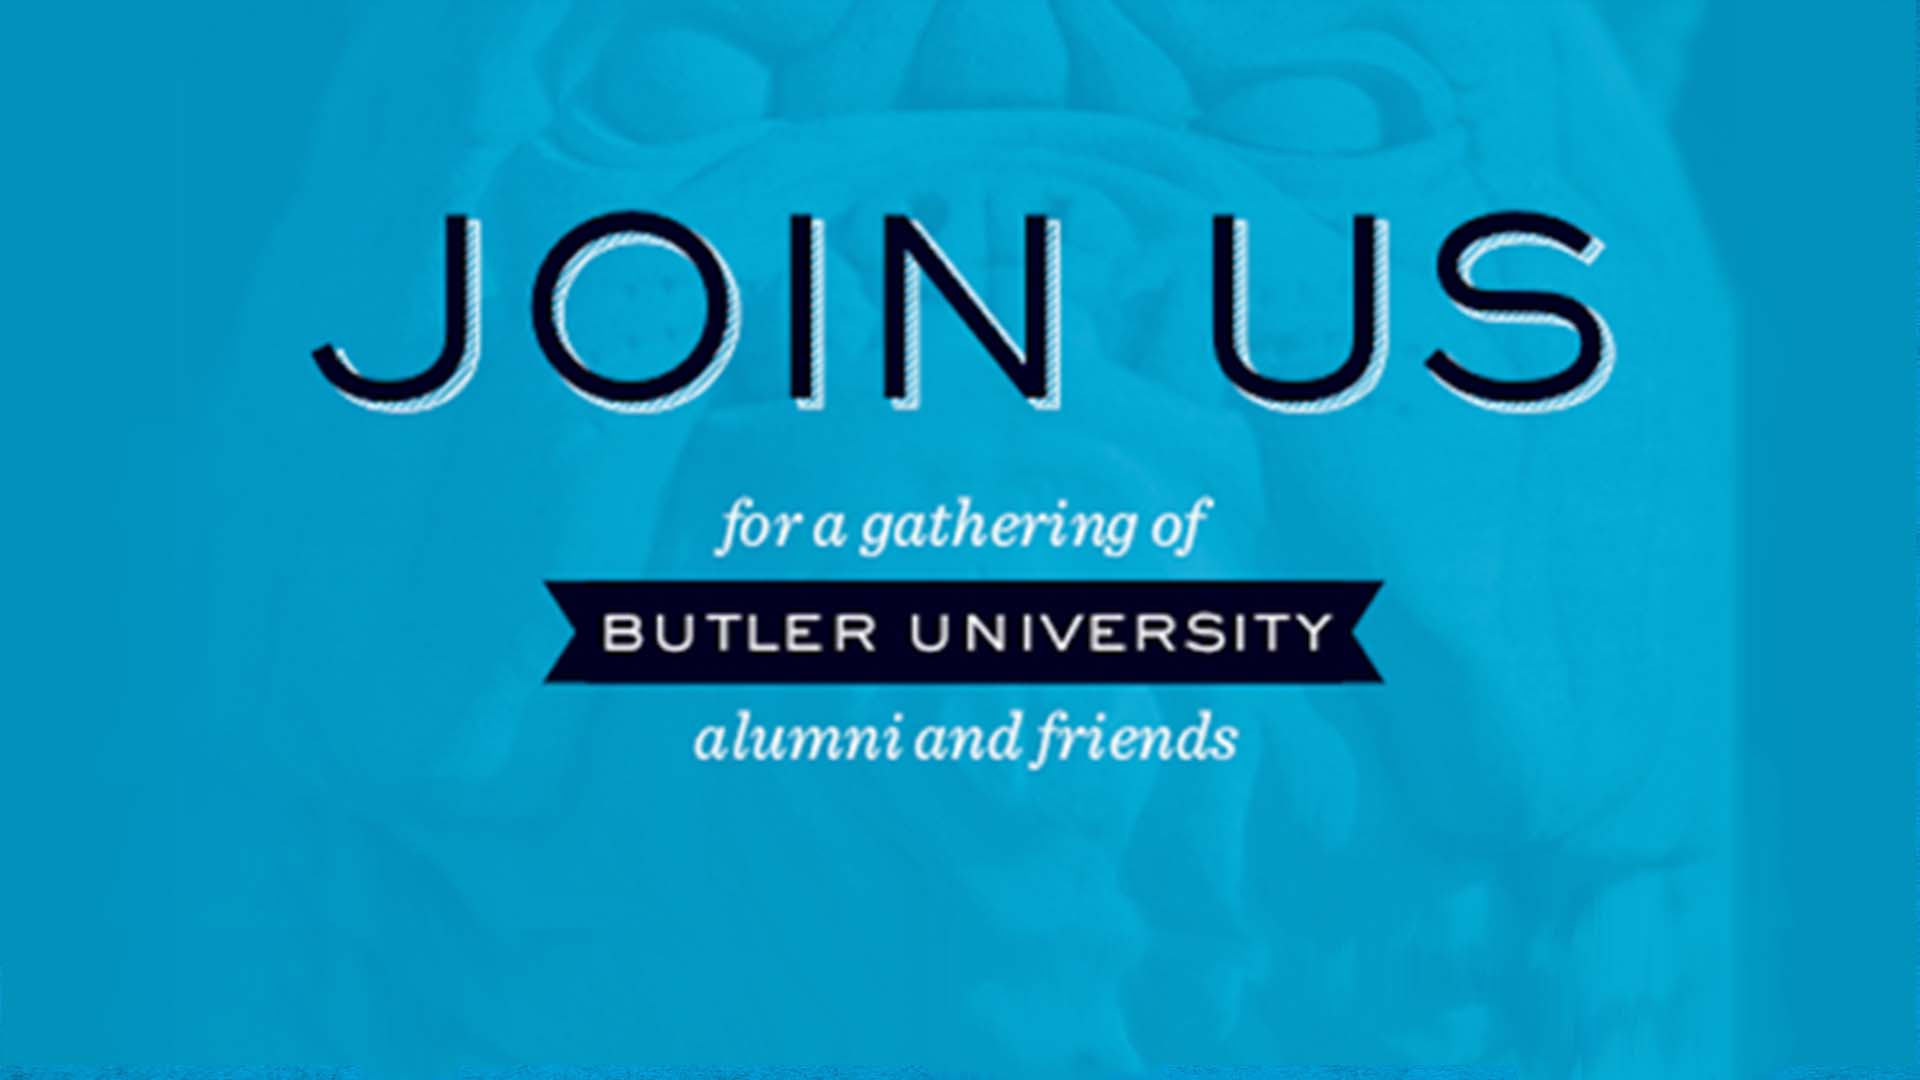 Butler University Community Reception